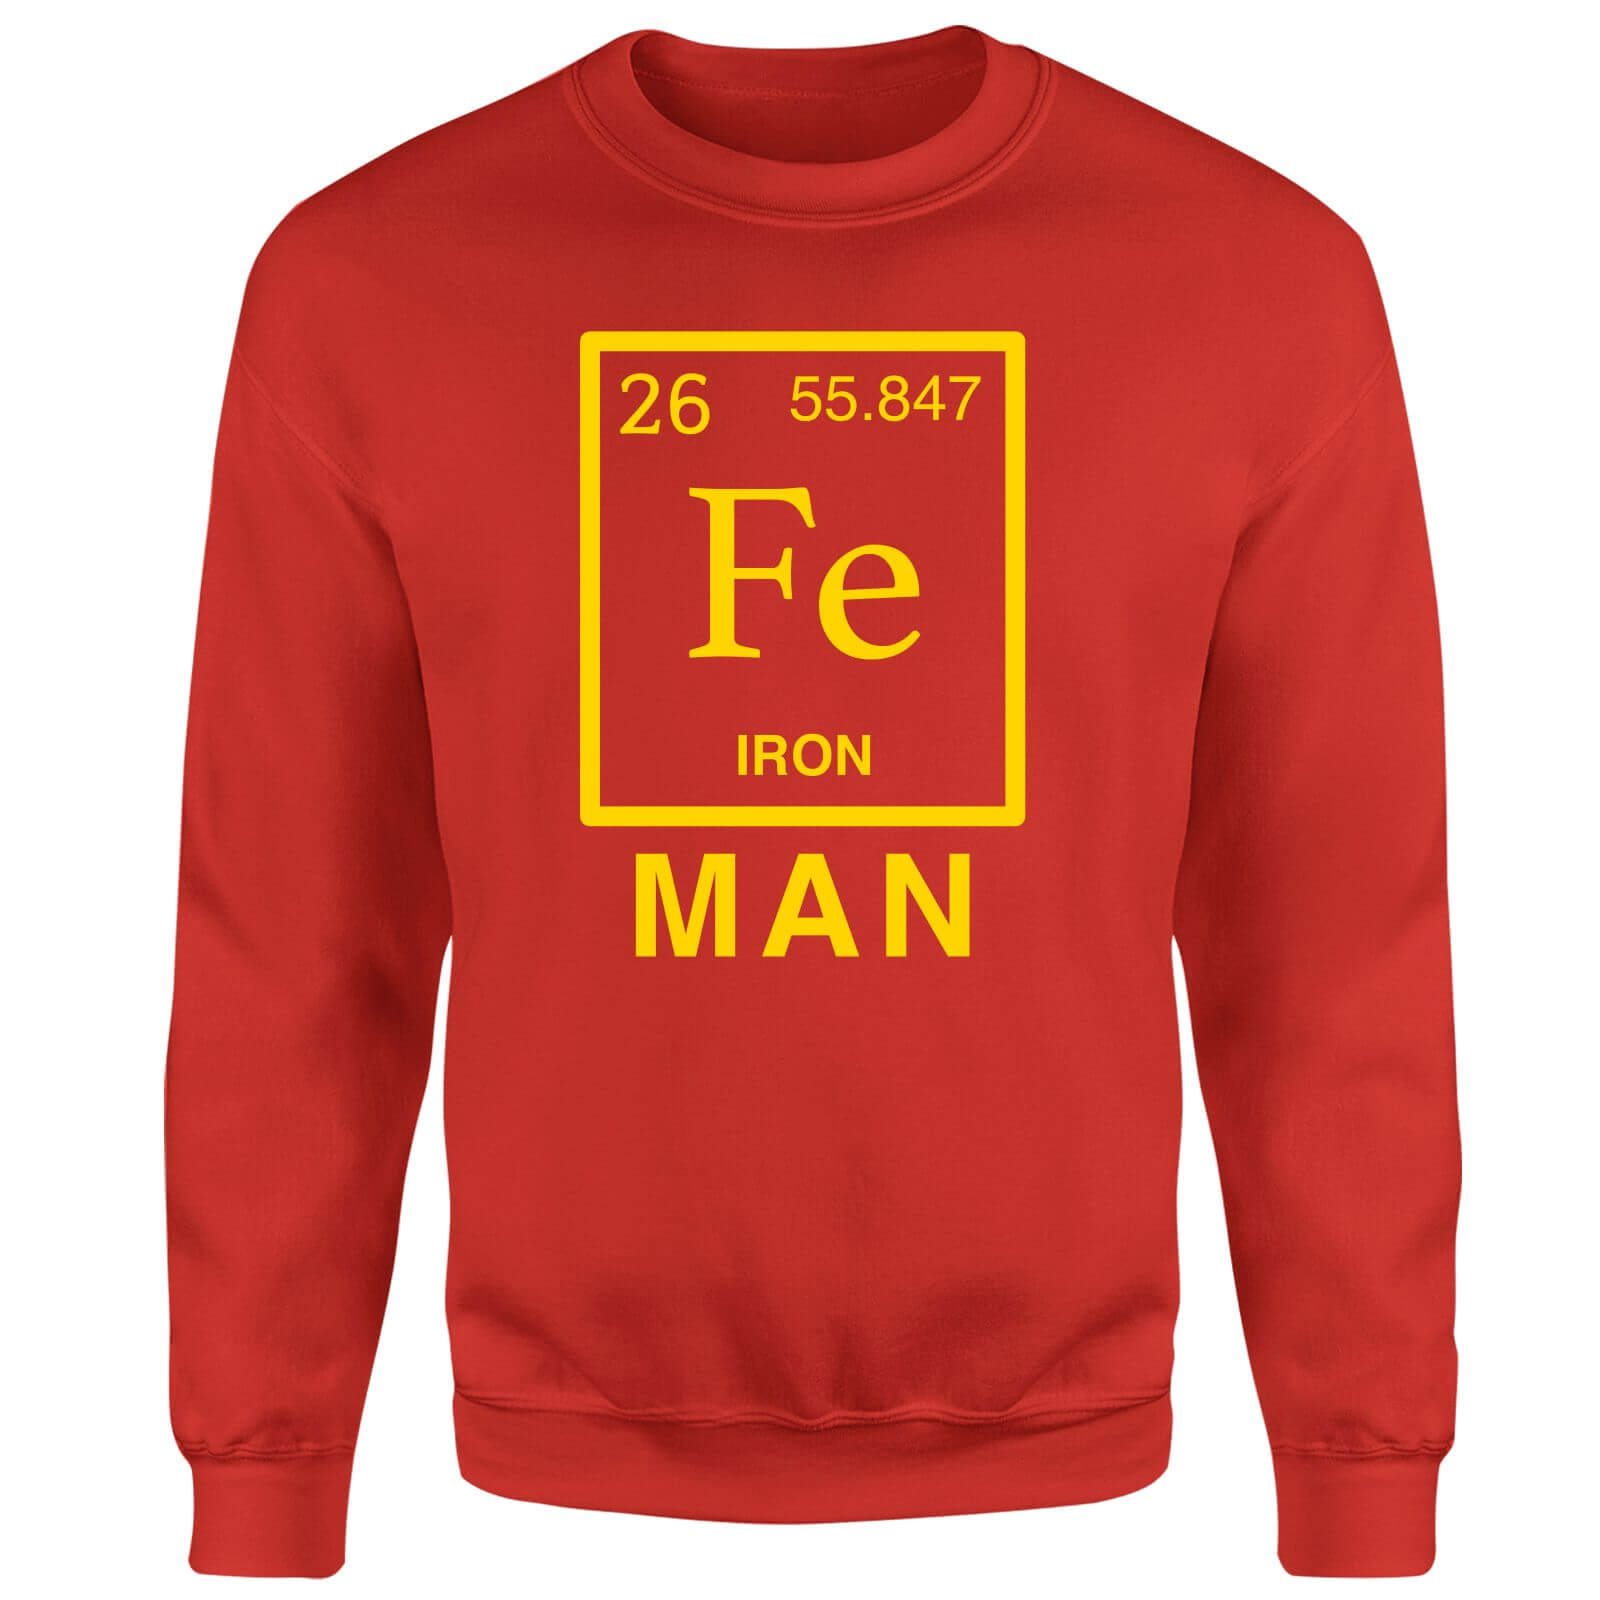 Fe Man Sweatshirt - Red